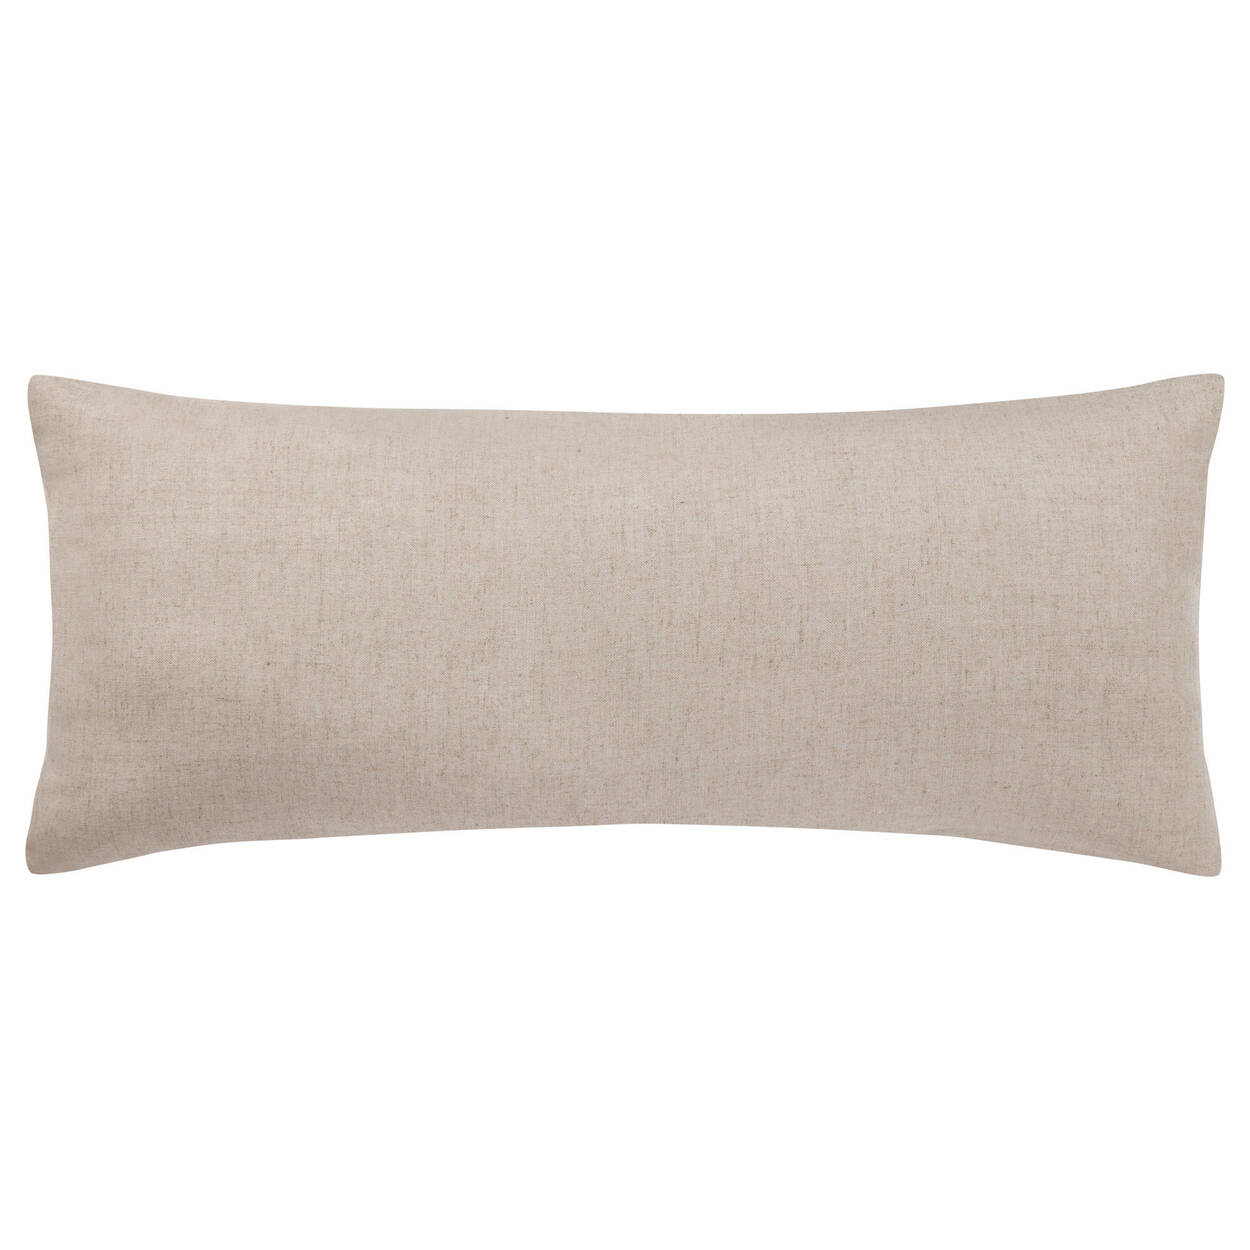 "Love Decorative Lumbar Pillow 15"" X 33"""